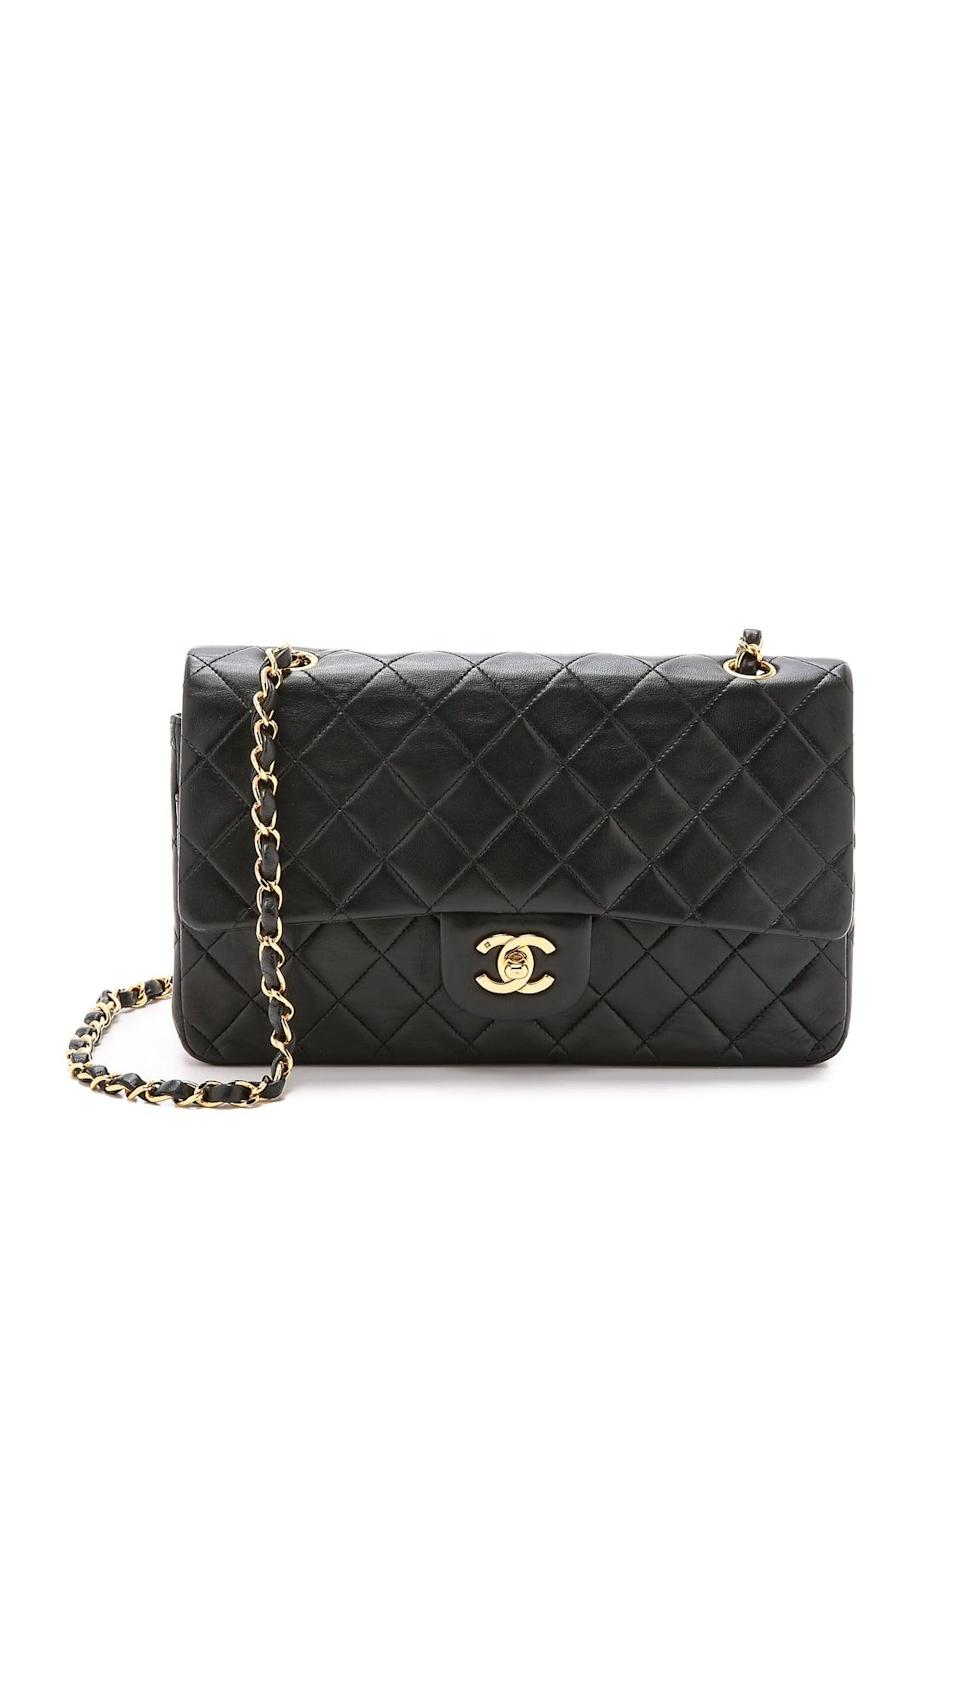 """<p>It's a classic for a reason. The <span>Chanel 10"""" Shoulder Bag</span> ($5,600) is at the top of every fashion girl's wish list. And while it's definitely pricey, these bags only appreciate in value. Consider this your prettiest investment. </p>"""